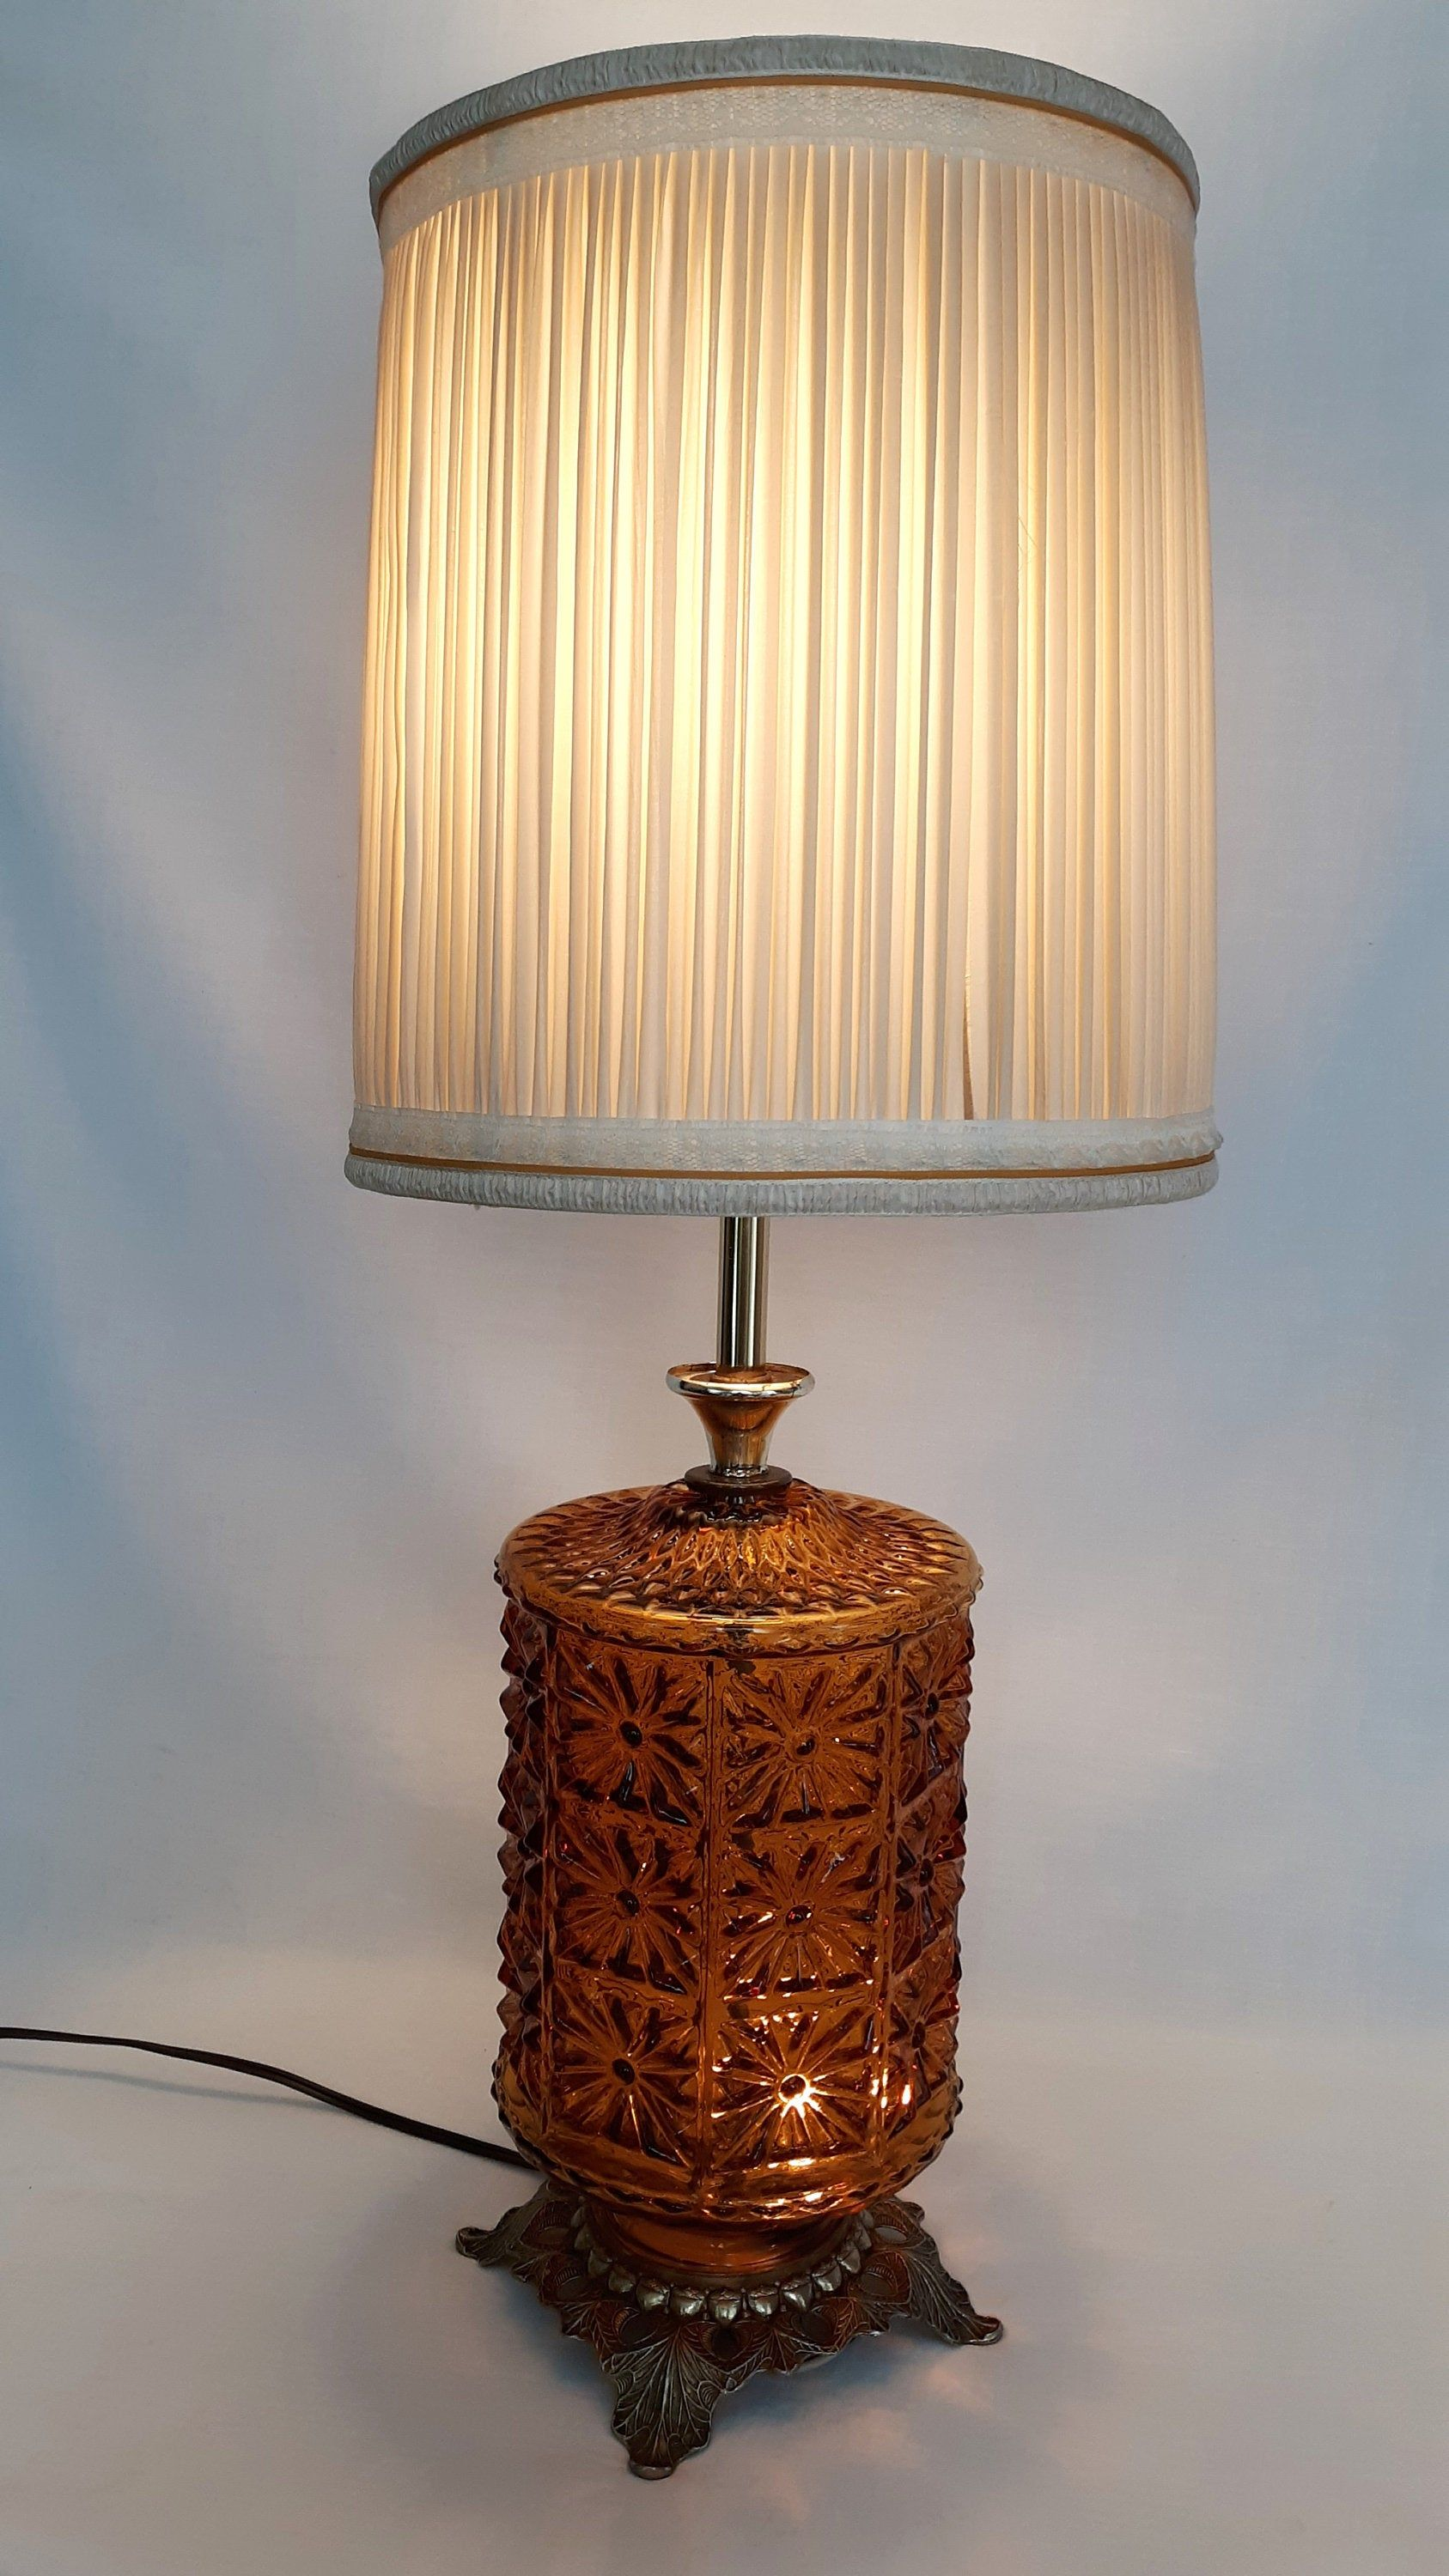 Vintage Art Deco Ef Ef Ind 1978 Amber Glass Daisies 3 Way In 2020 Vintage Lamps Glass Lamp Shade Milk Glass Lamp